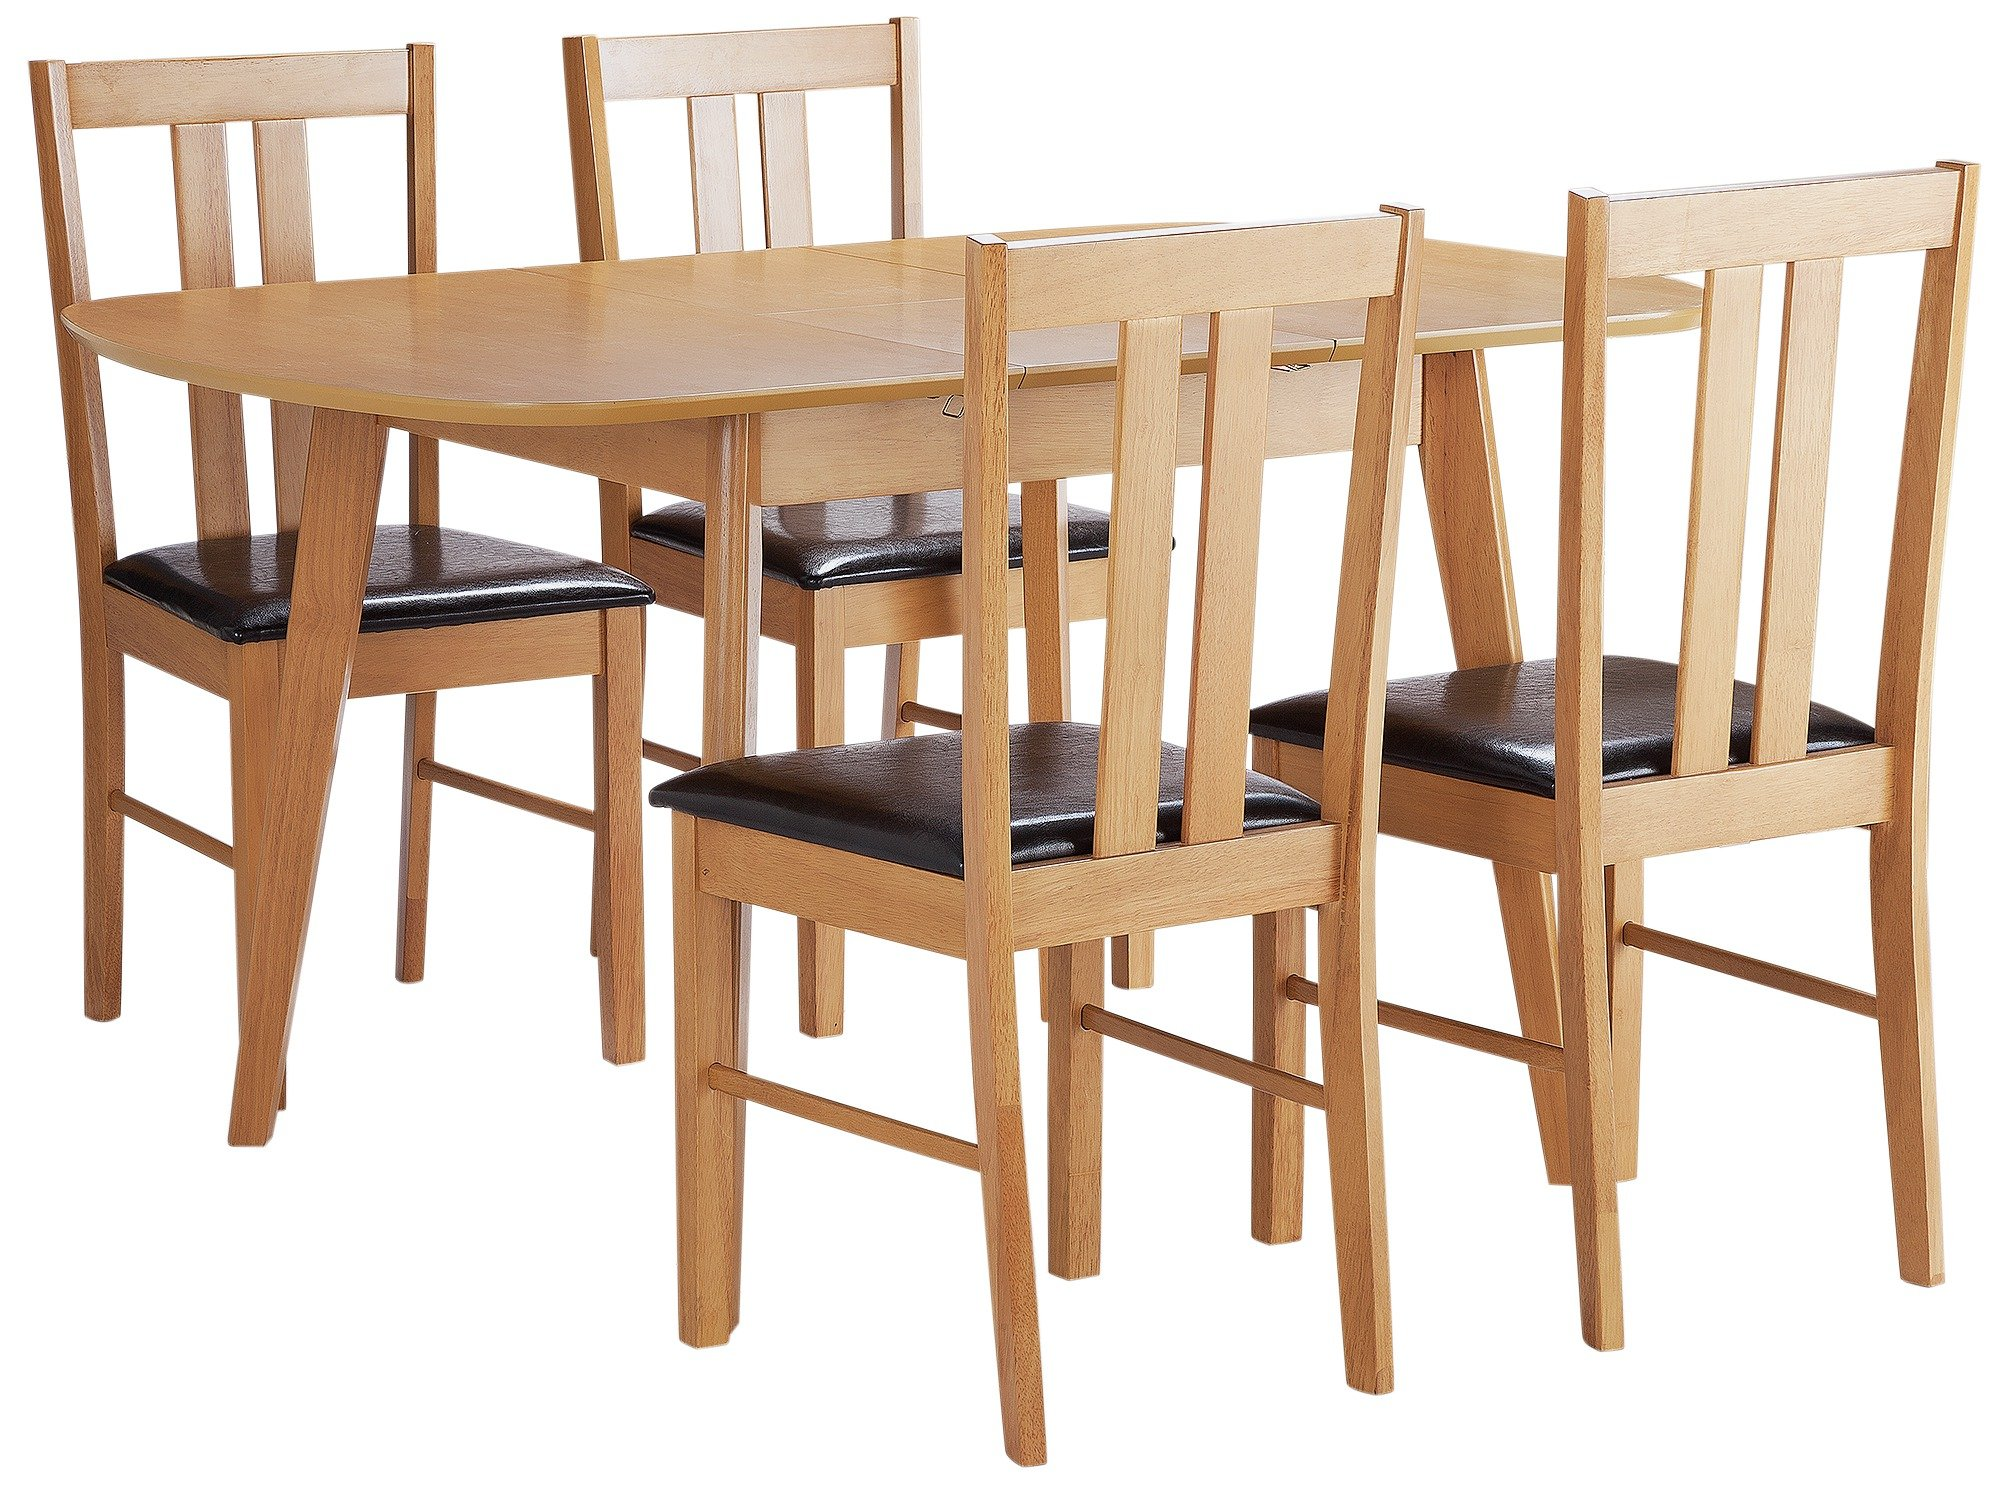 Extendable Table buy home witley extendable solid wood table & 4 chairs - black at